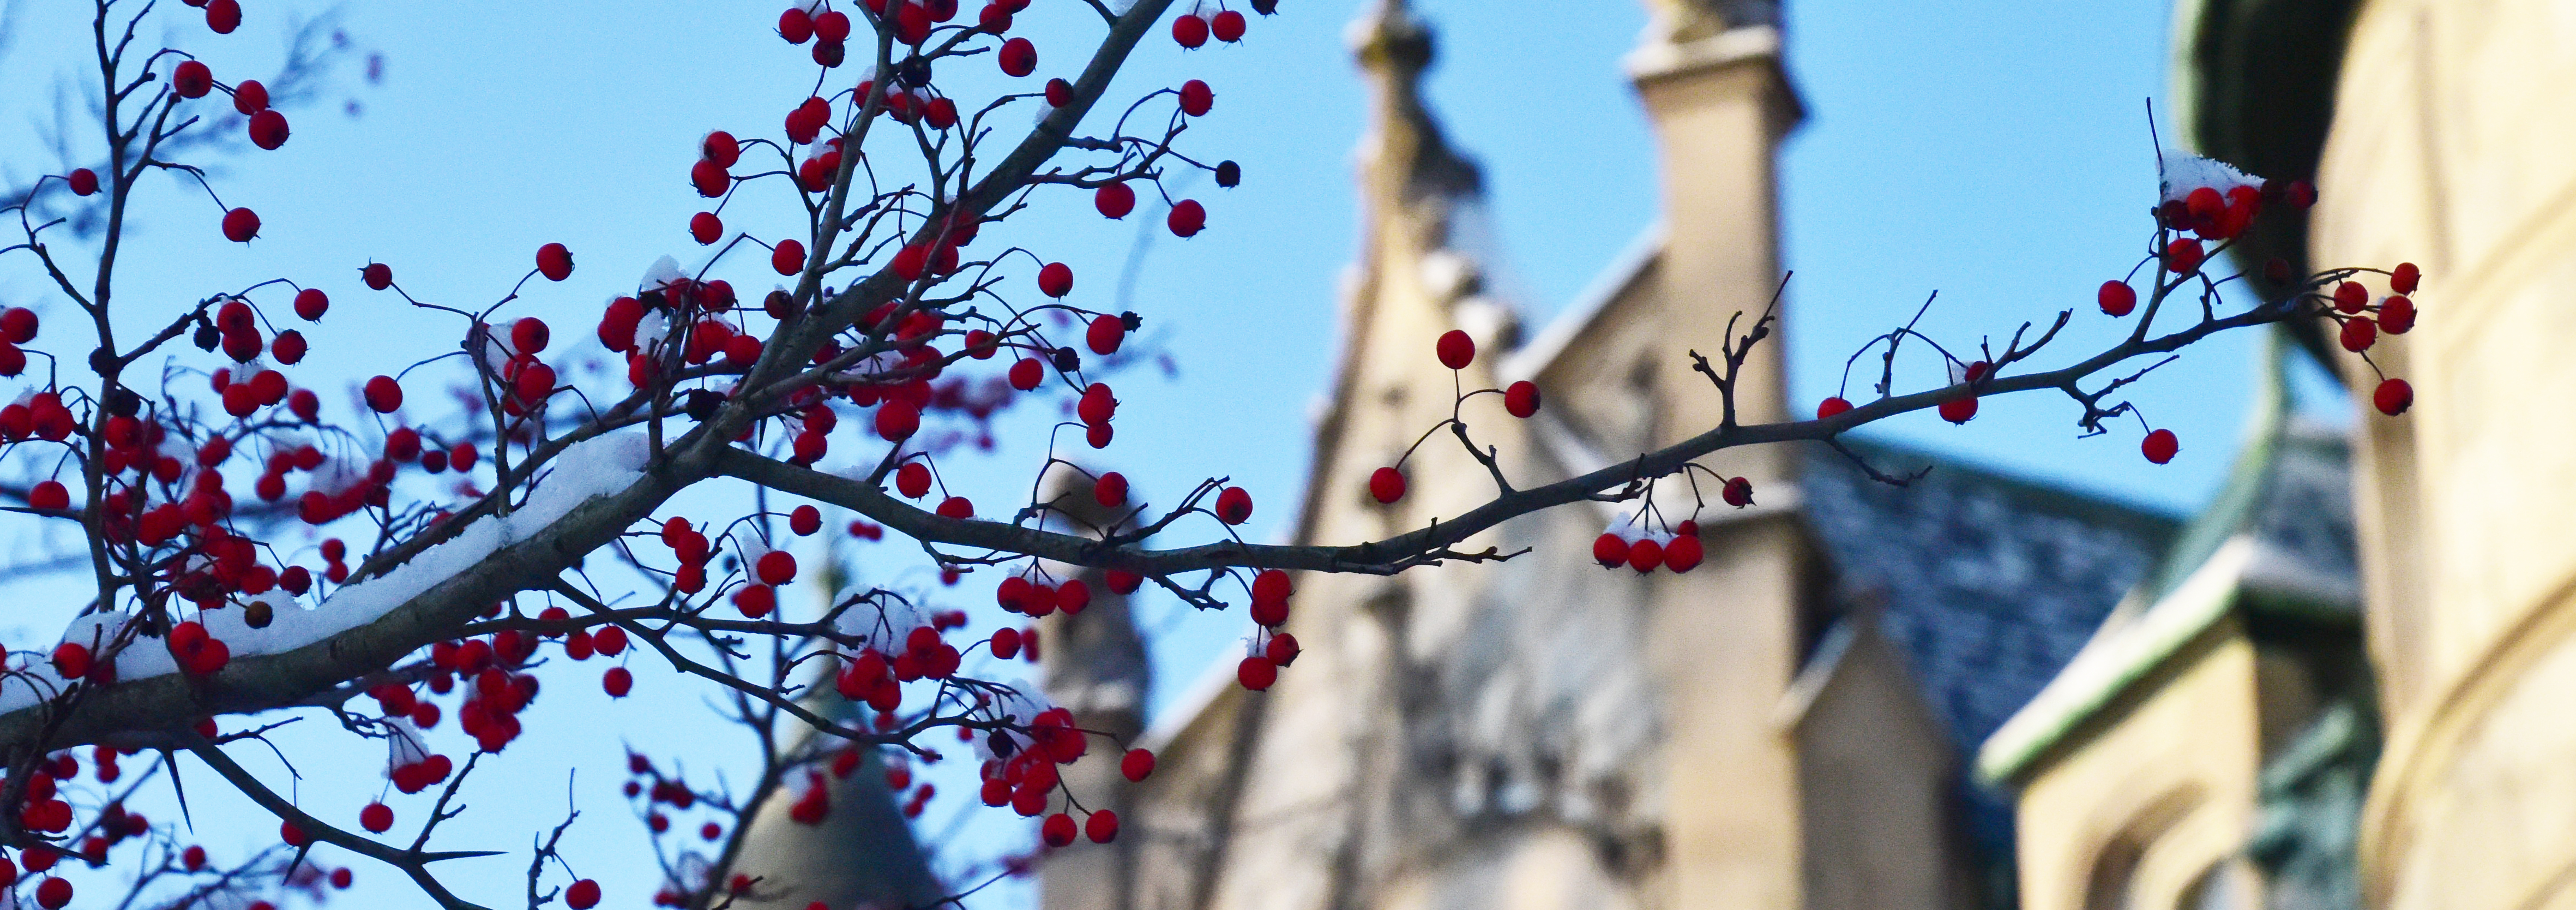 retreat image-red berries in focus with the top of main building out of focus.